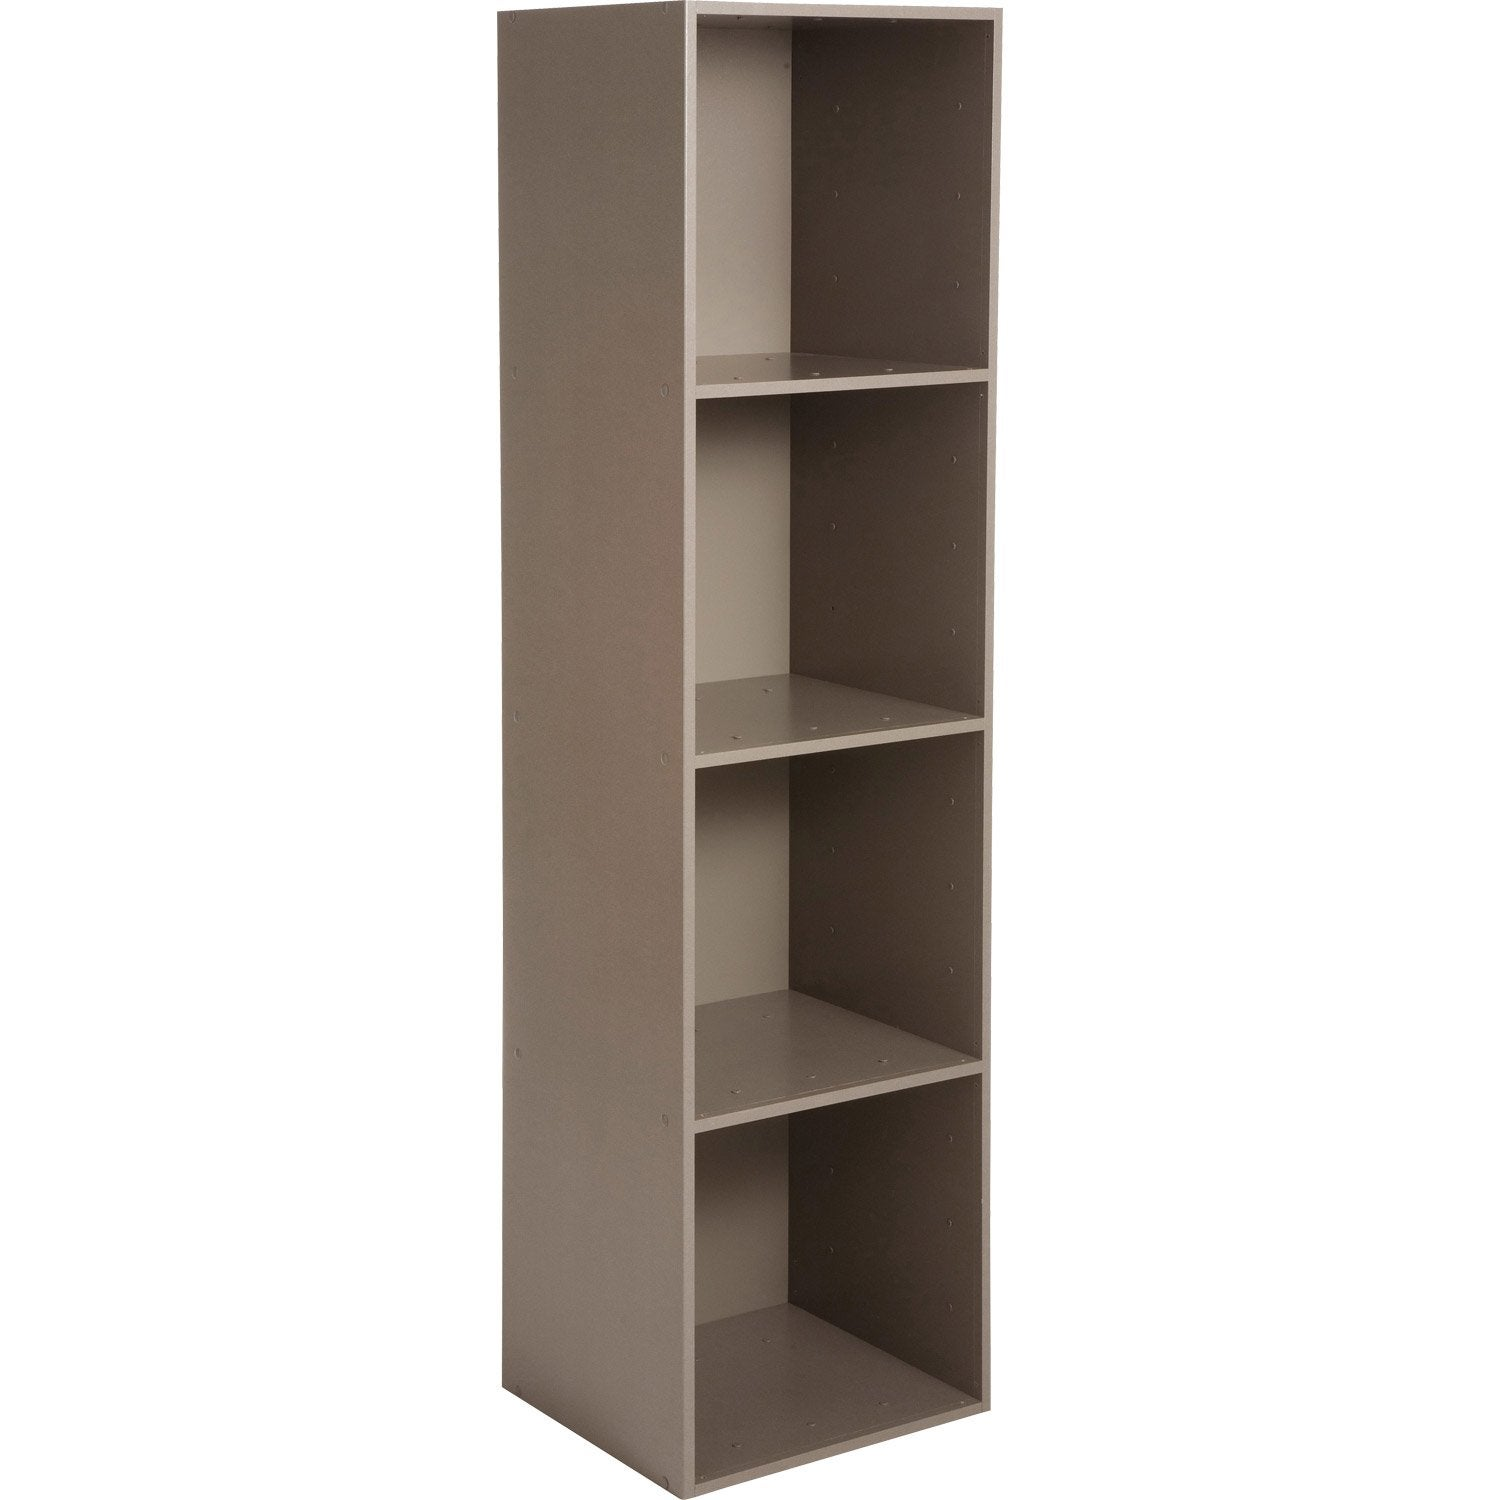 Etag re 4 cases multikaz taupe l35 2 x h137 2 x p31 7 cm leroy merlin - Etagere murale casier ...